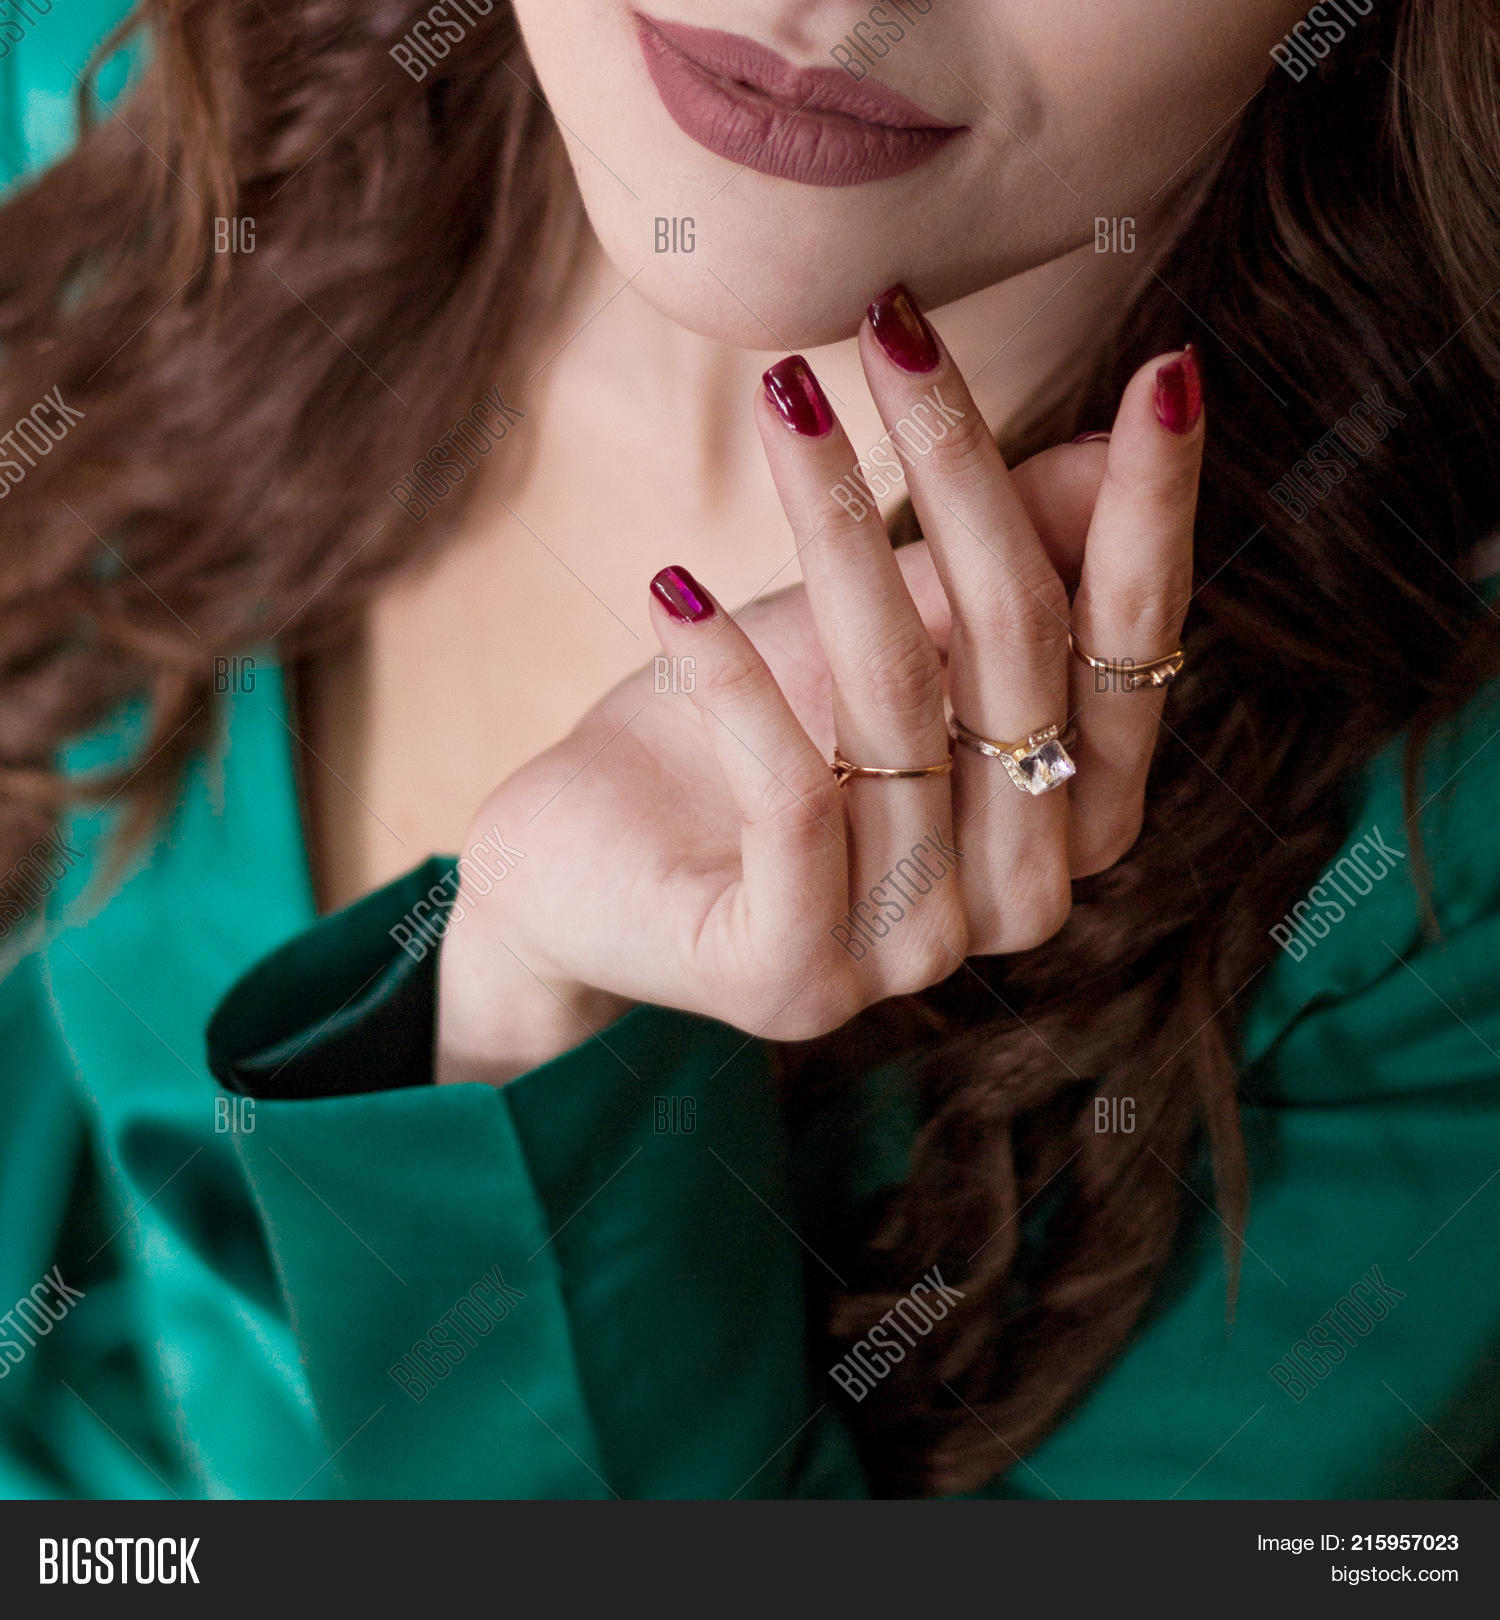 Woman\'s Hand Red Nails Image & Photo (Free Trial)   Bigstock